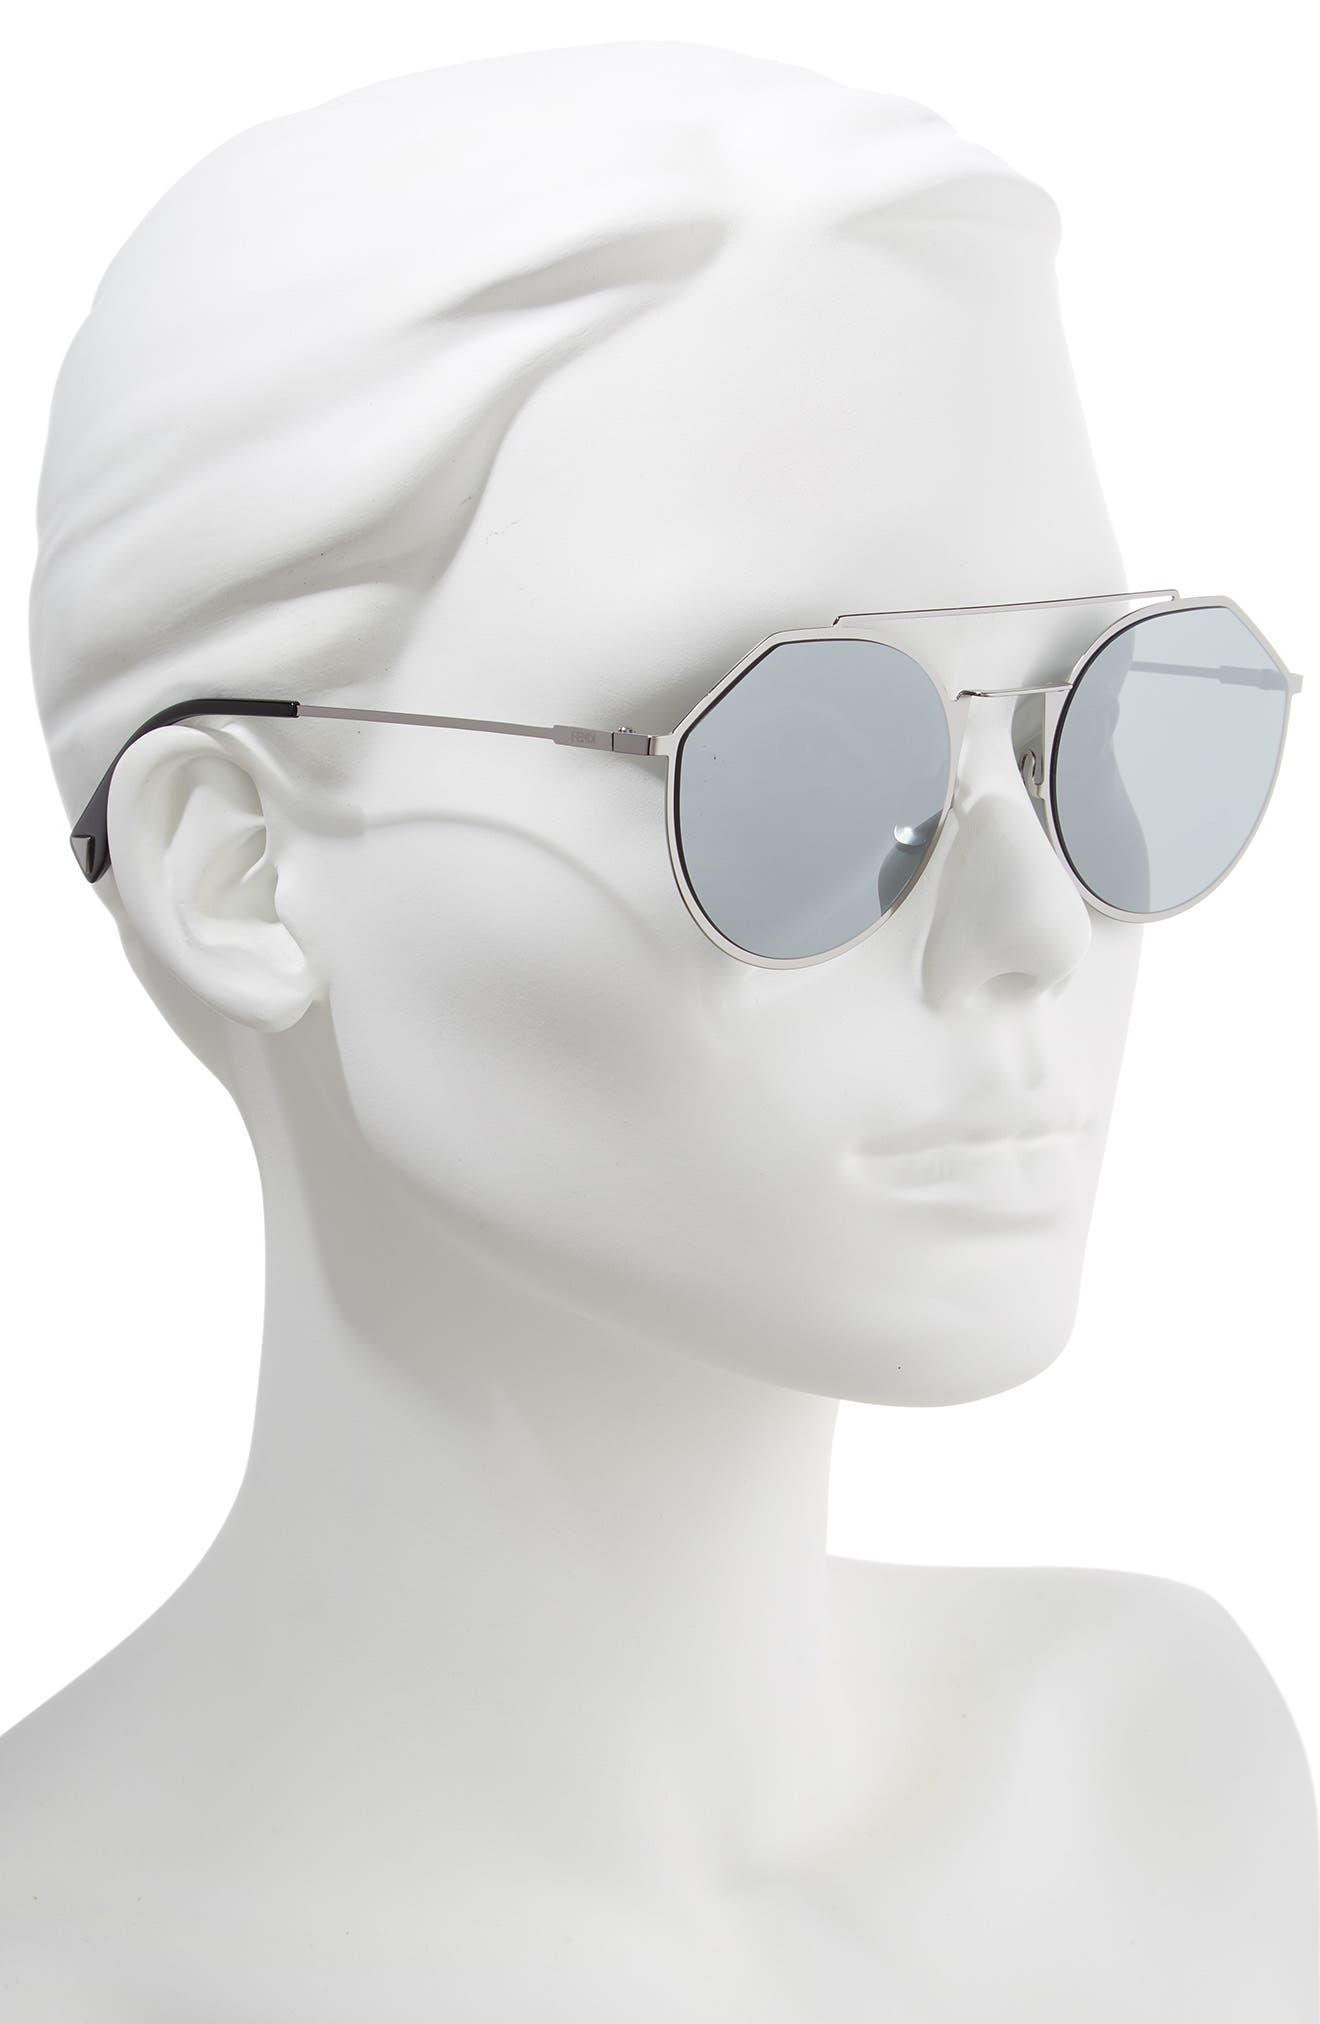 54mm Round Sunglasses,                             Alternate thumbnail 2, color,                             RUTHENIUM